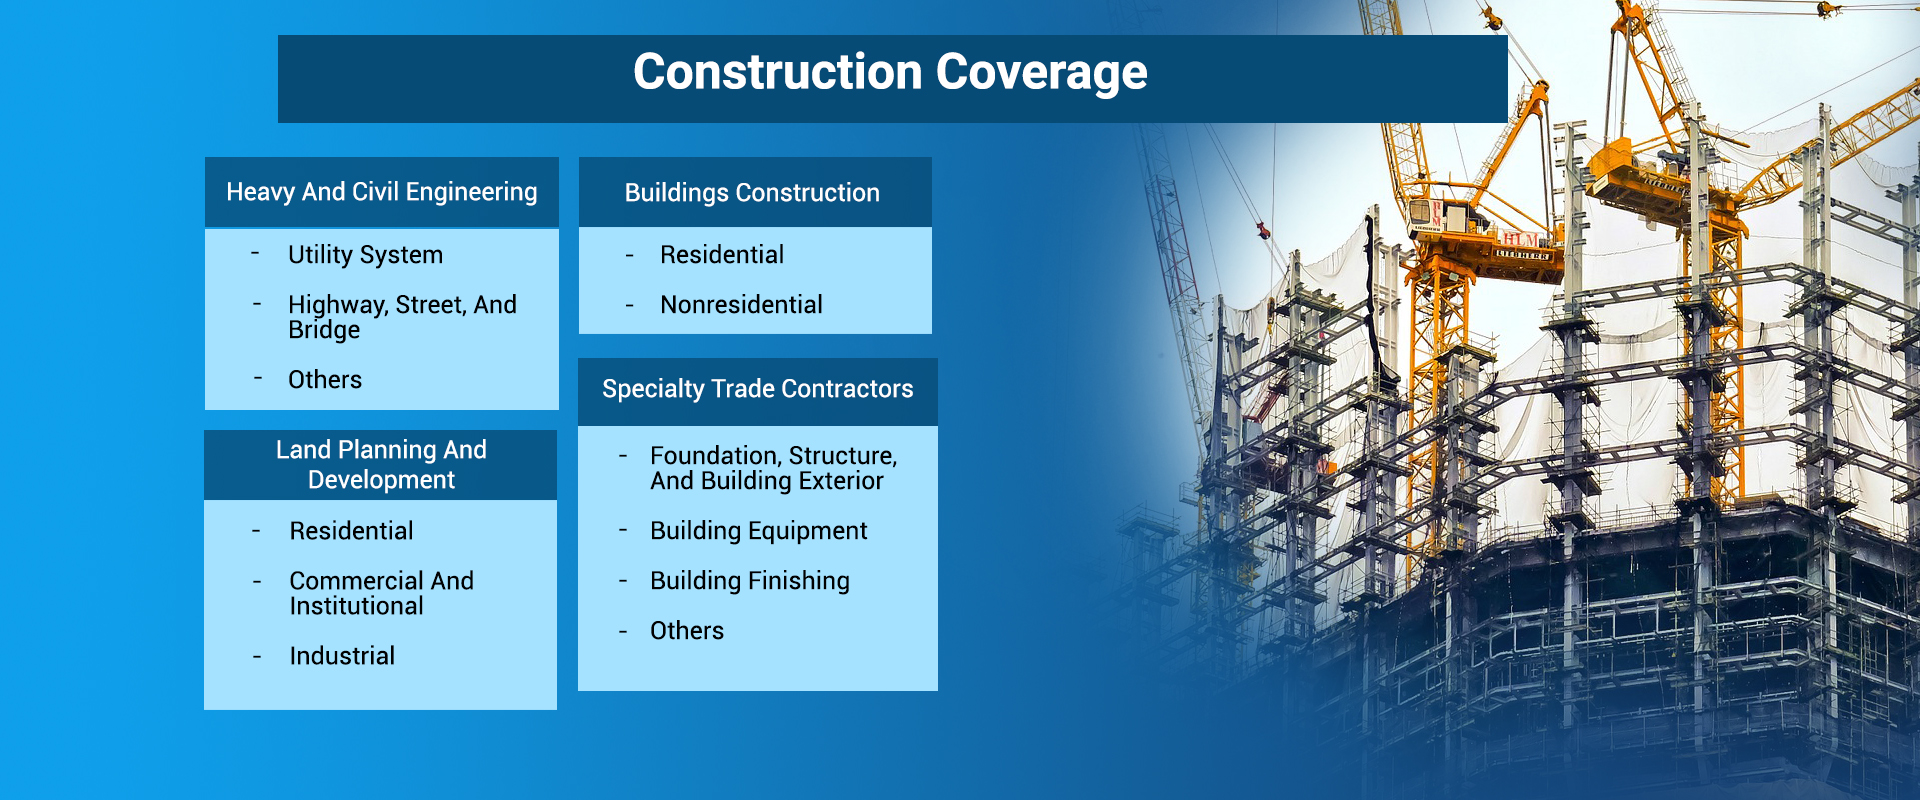 Construction Coverage